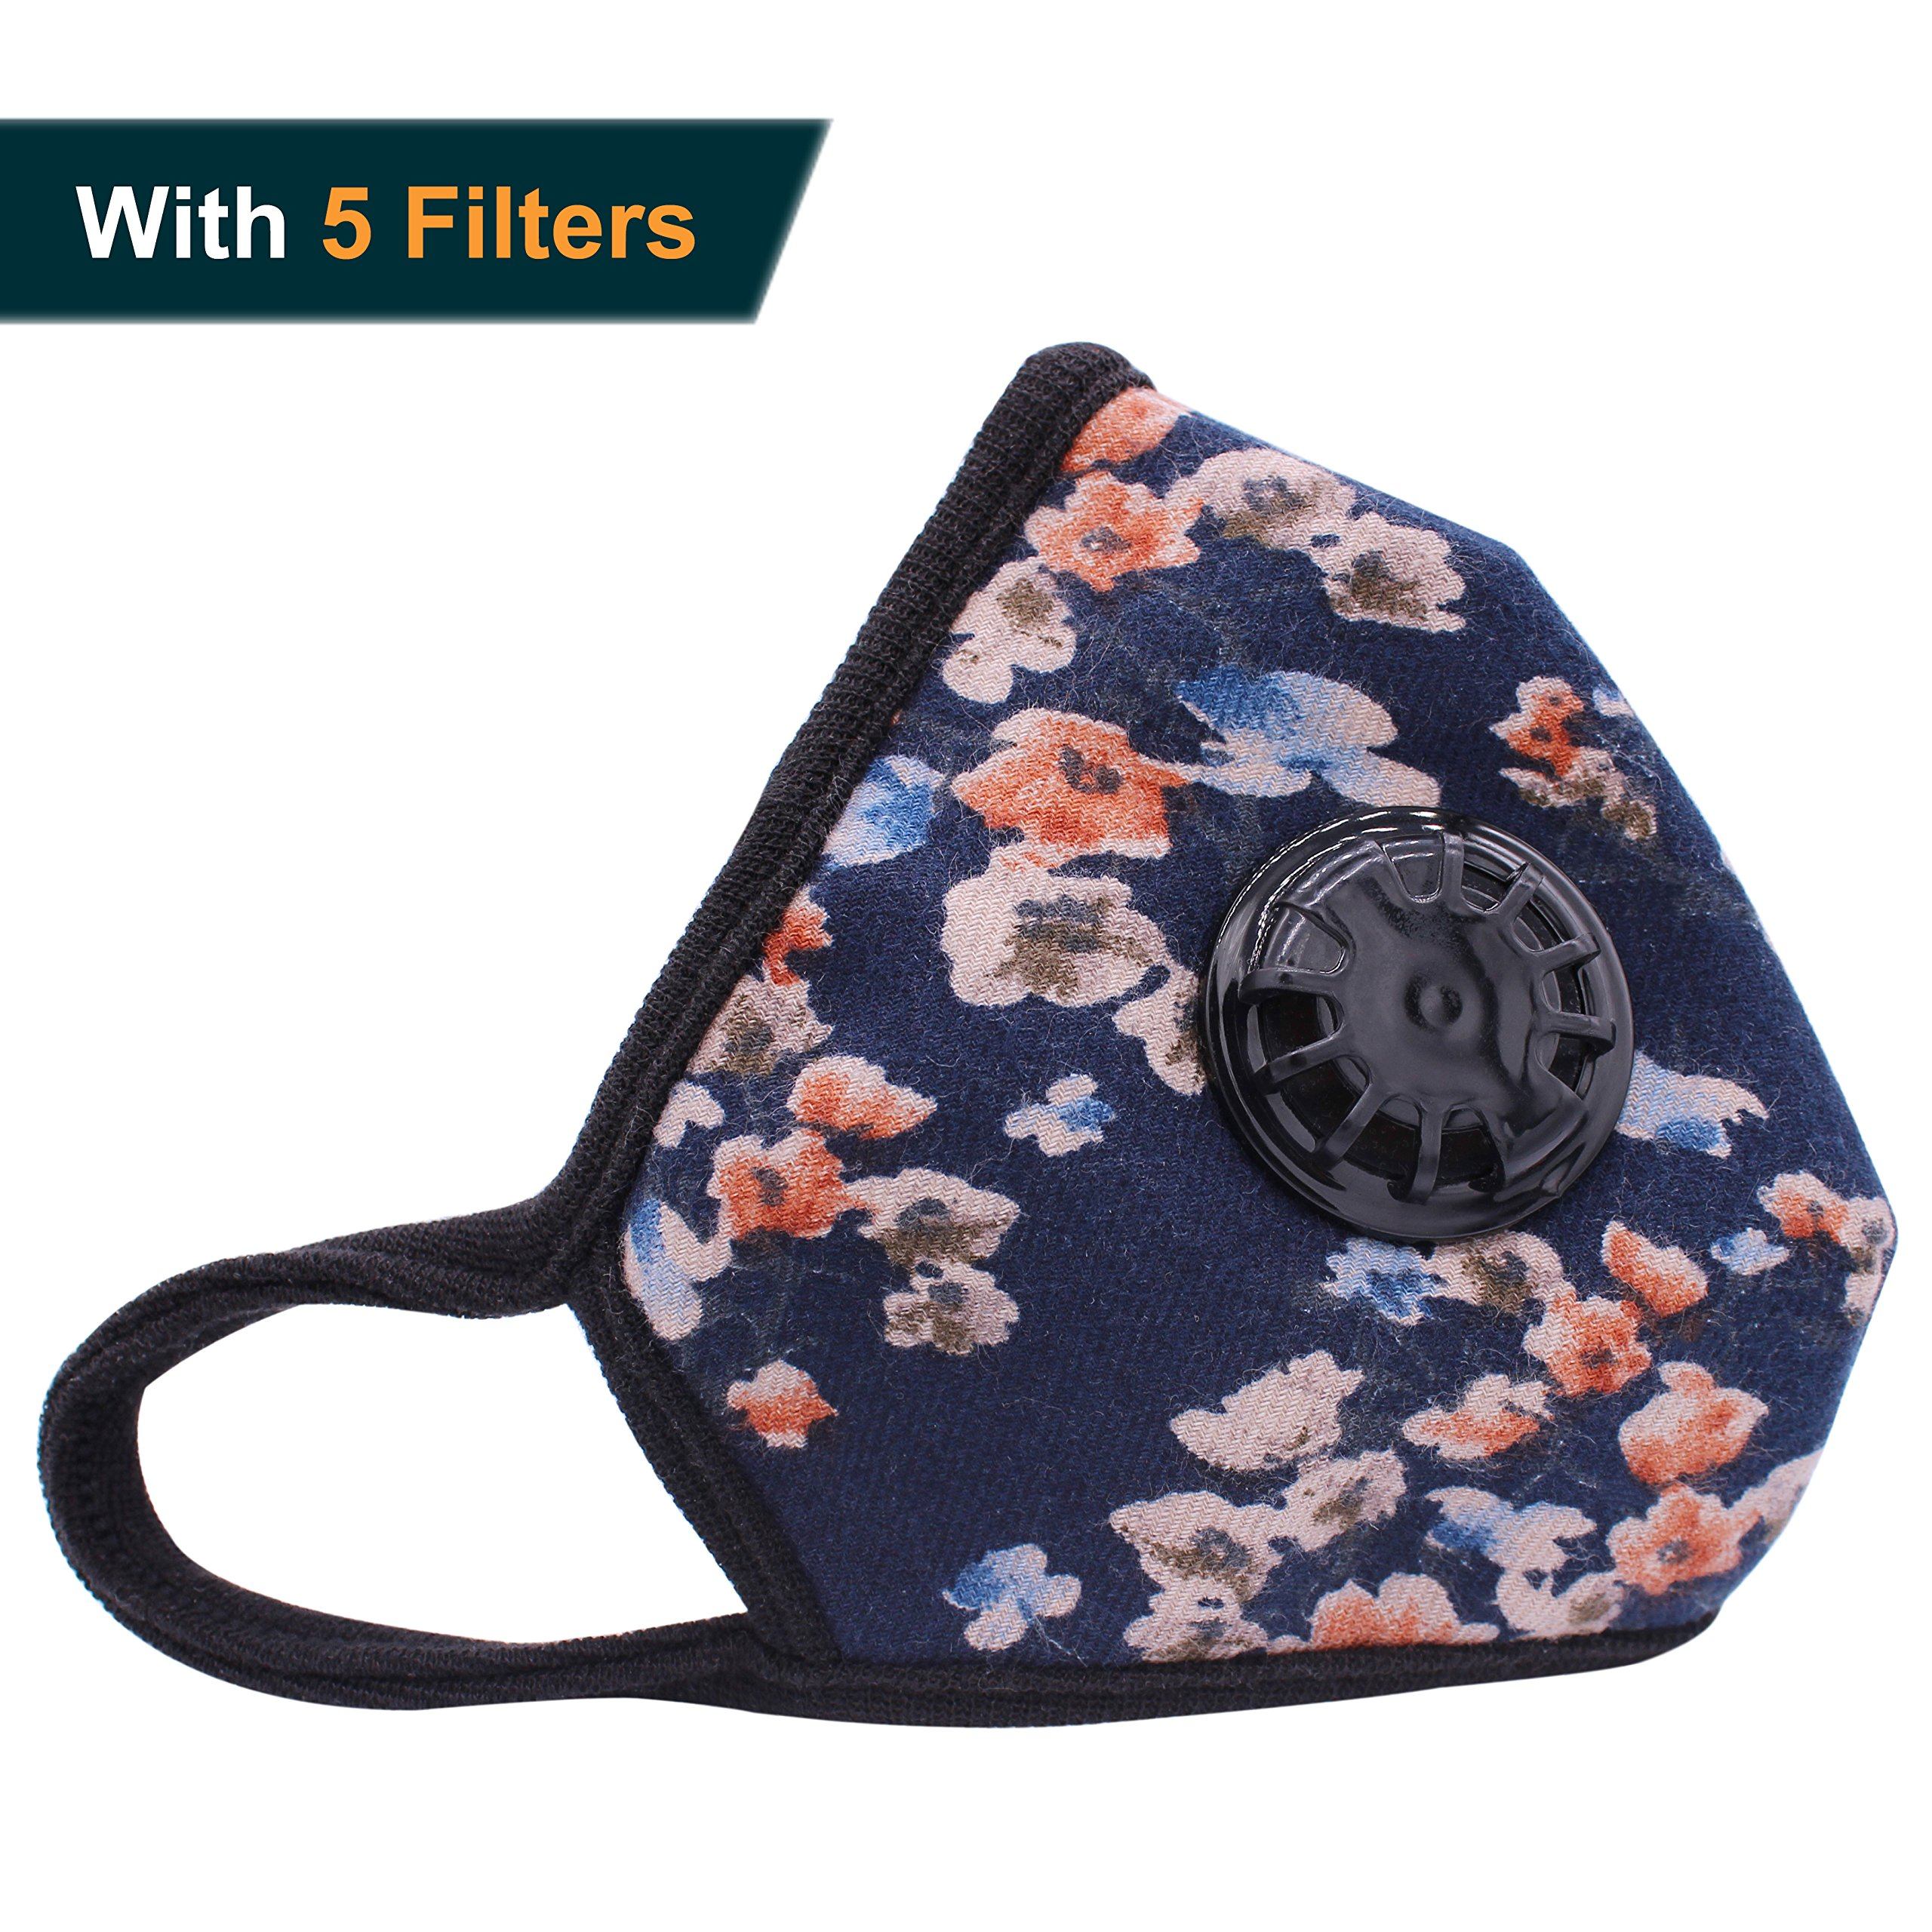 Muryobao Anti Pollution Mask Military Grade N99 Respirator Mask with Valve Replacement Filter Washable Cotton Anti Dust Mouth Mask for Men Women Blue Flower